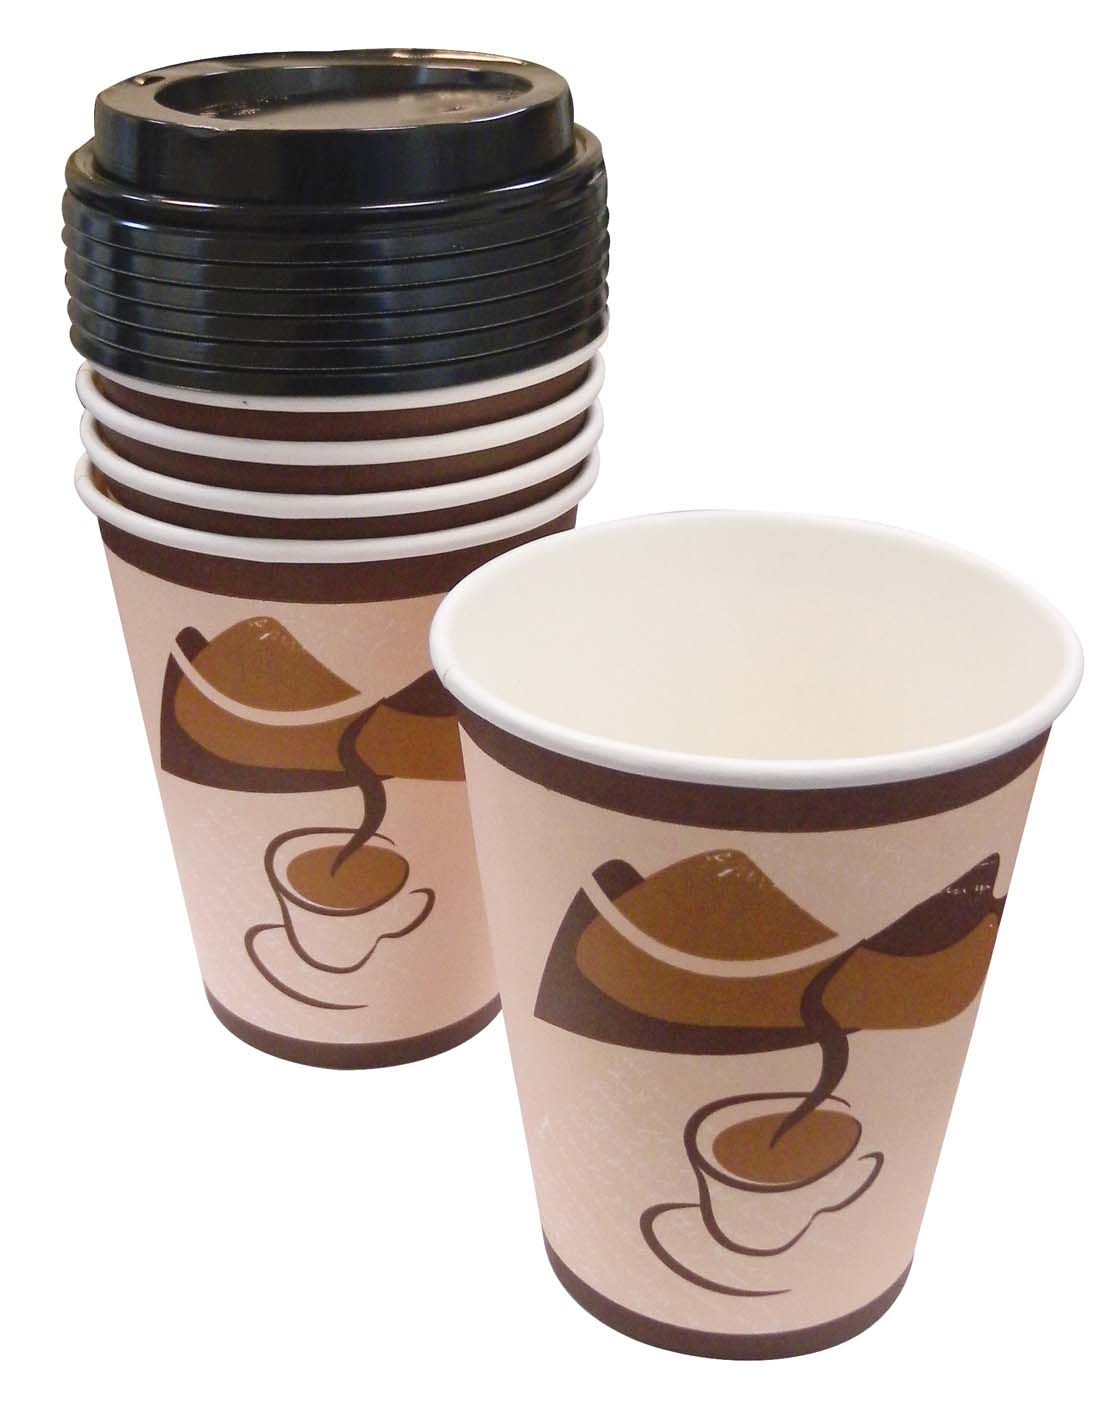 View HOT CUPS 12 PK 12 OZ - 6 CUPS + 6 LIDS